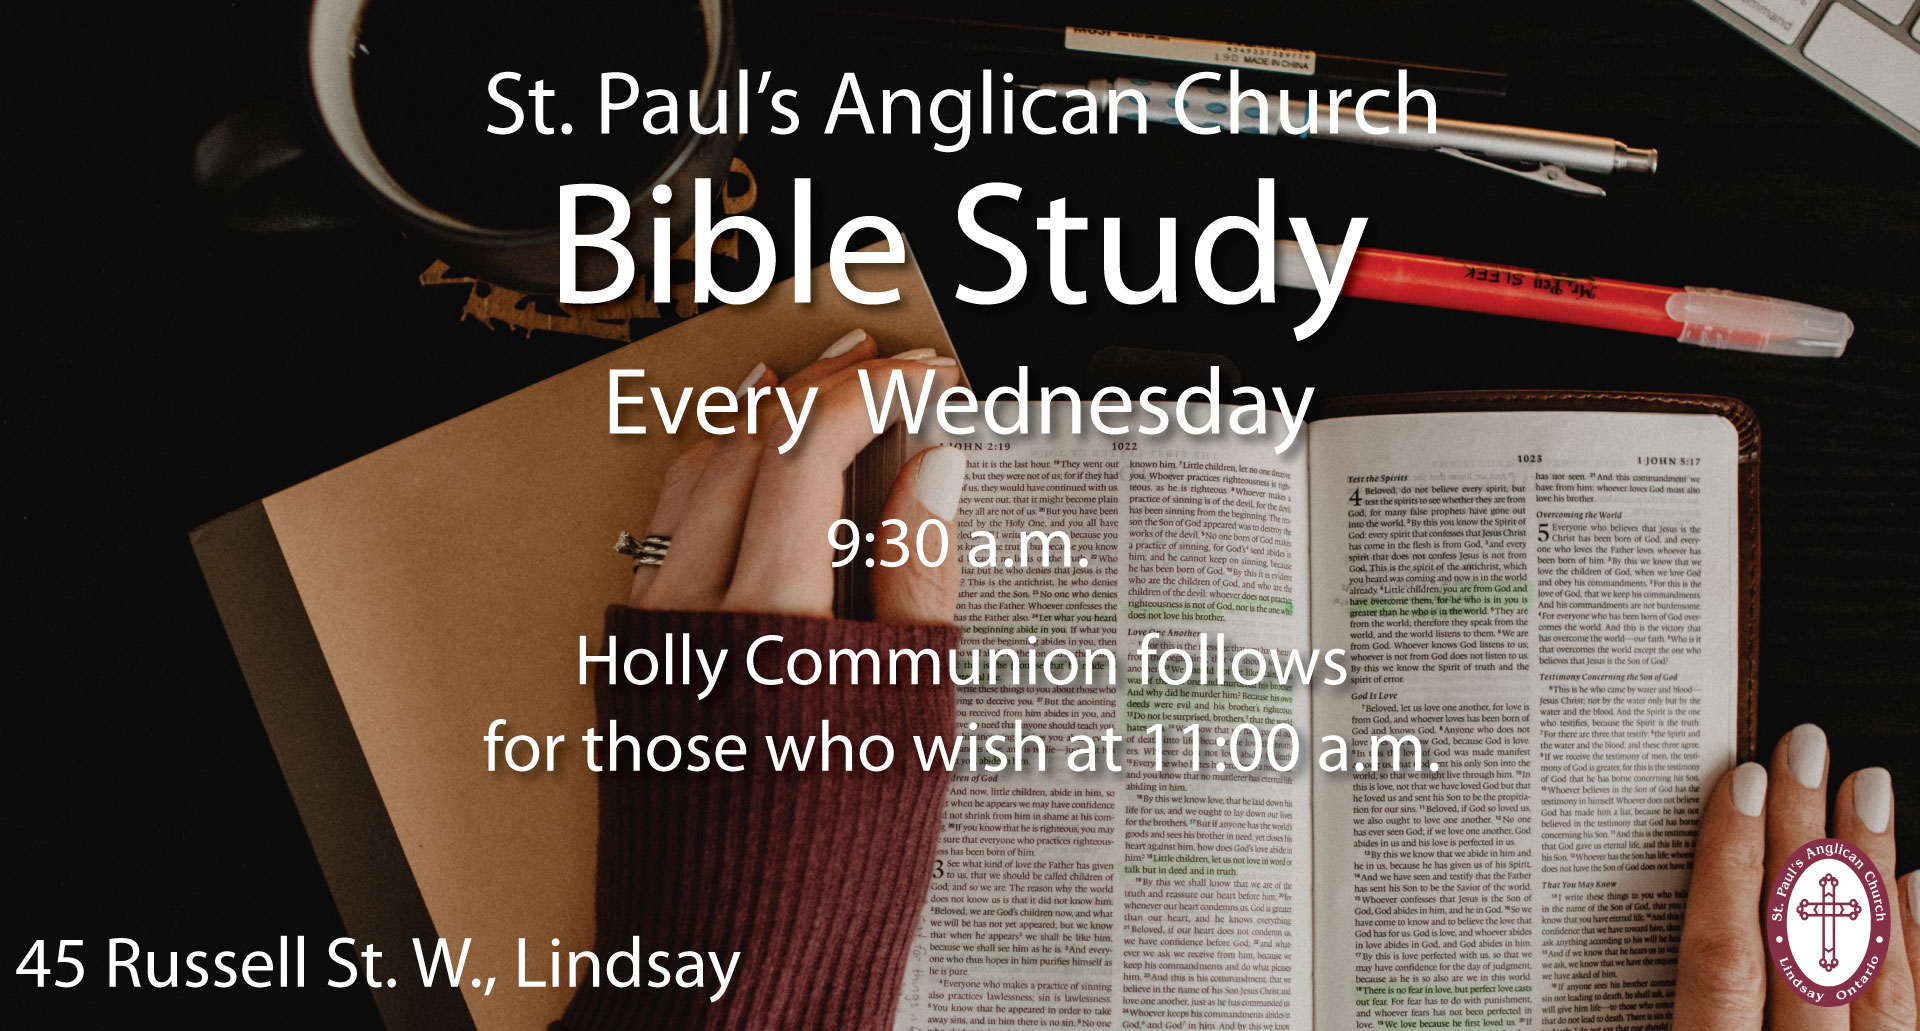 Bible Study at St. Paul's